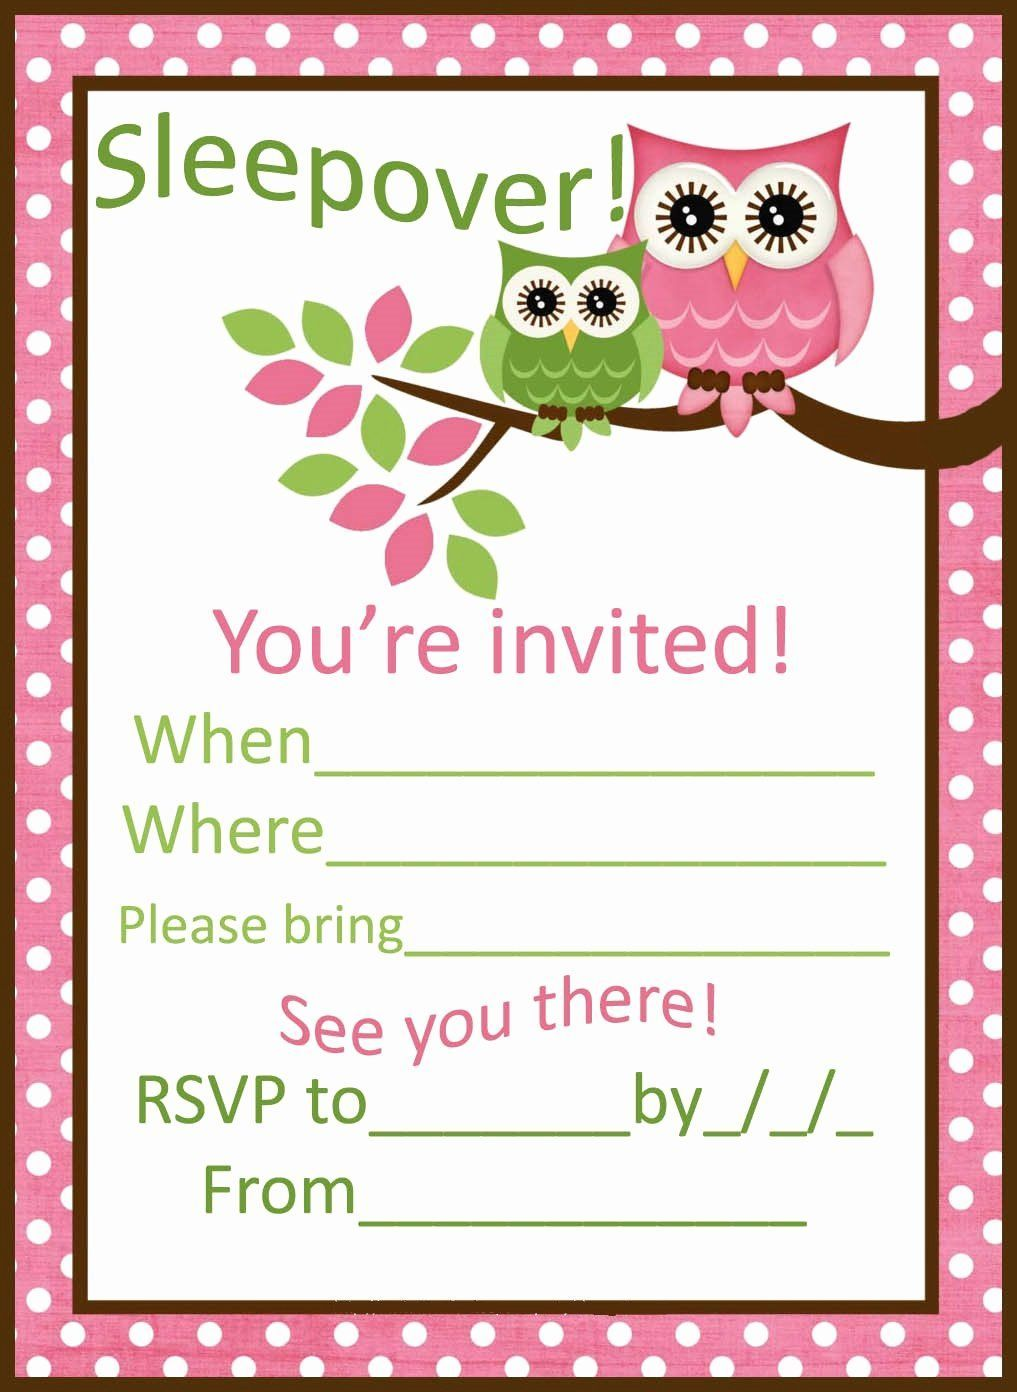 Party Invitation Template Printable Luxury Sleepover Party Invitations Party  Xyz #sleepov… in 2020 | Sleepover invitations, Party invite template,  Slumber party invitations